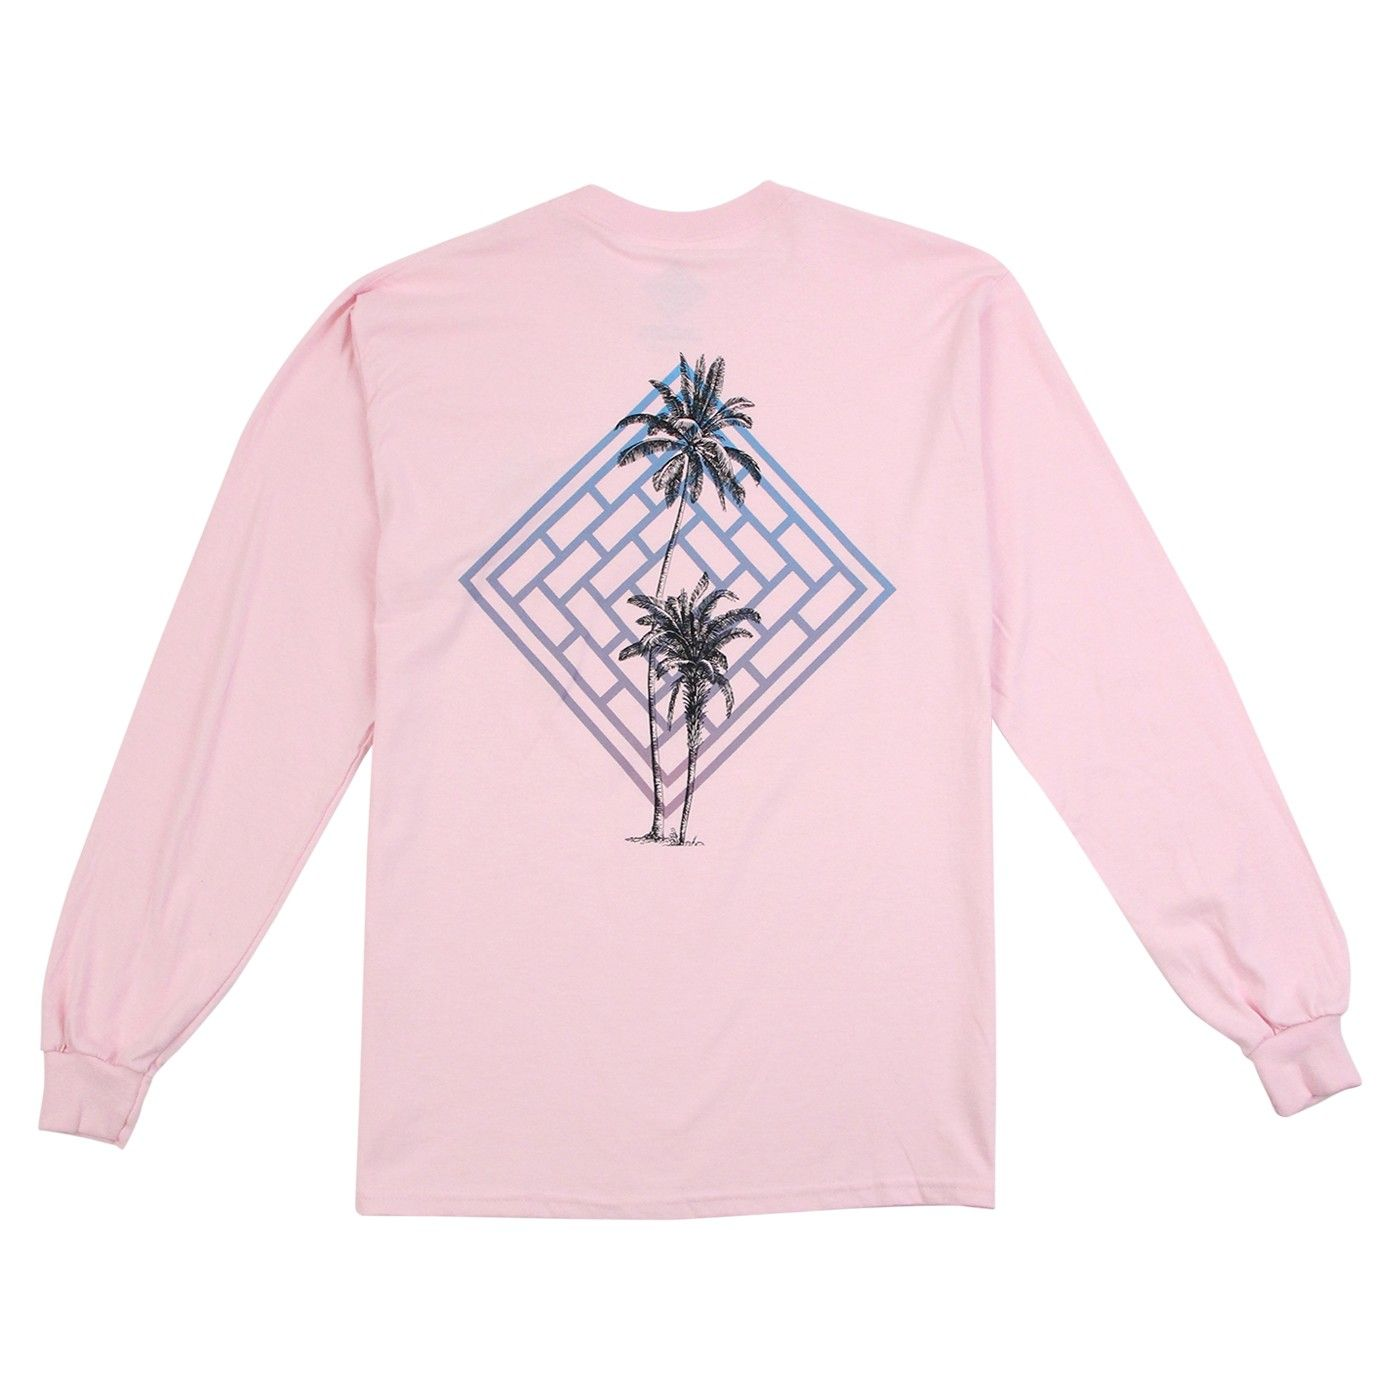 The National Skateboard Co Fade Palm L/S T Shirt in Pink